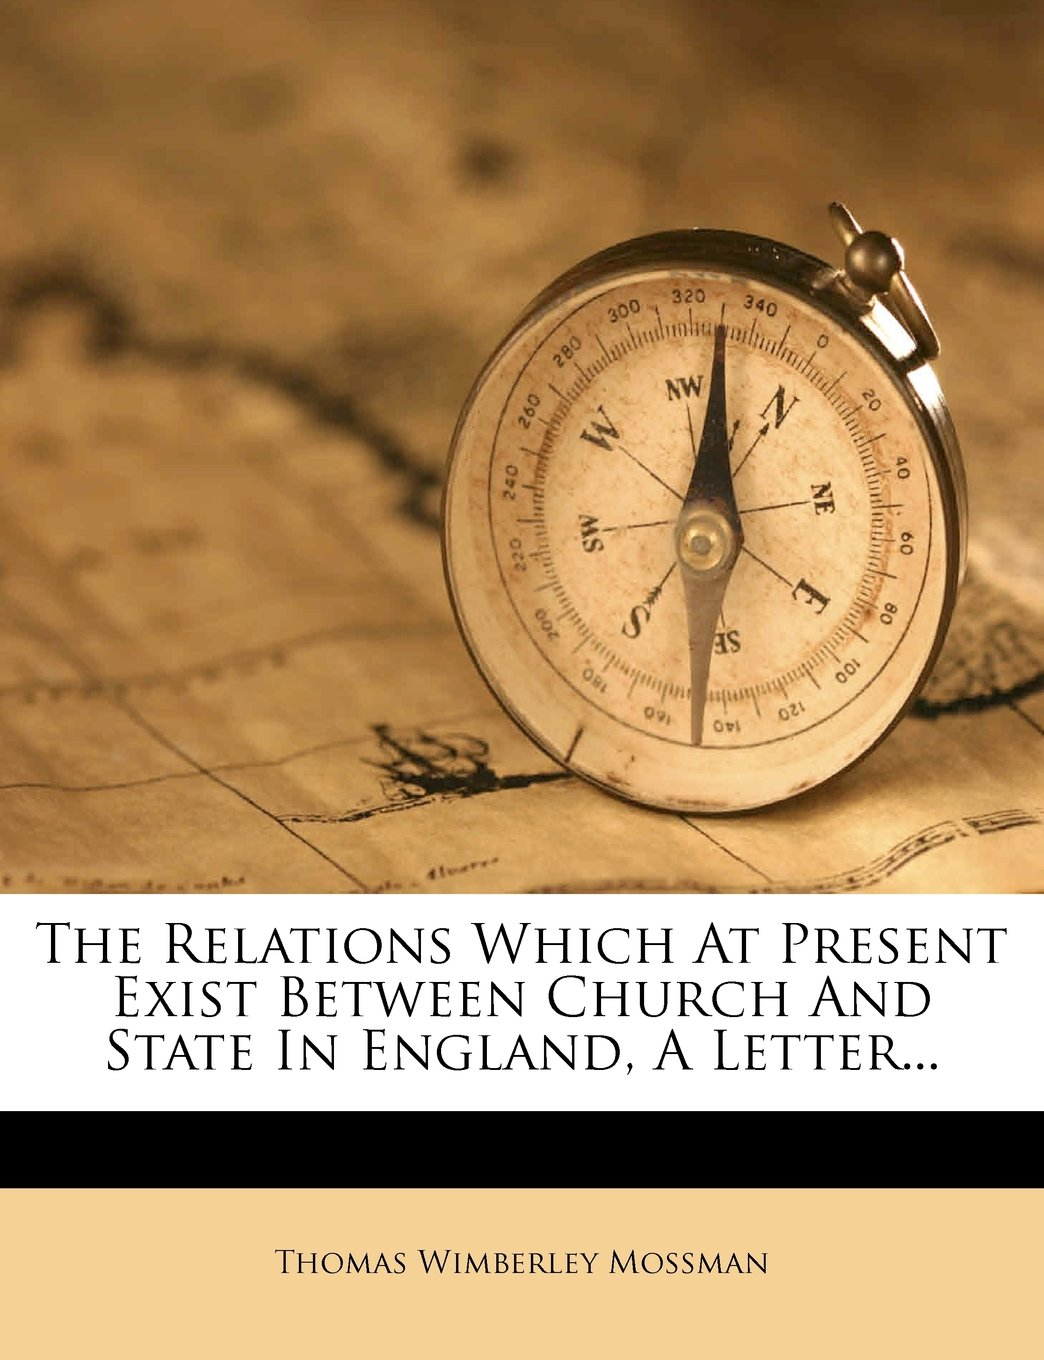 Download The Relations Which At Present Exist Between Church And State In England, A Letter... PDF